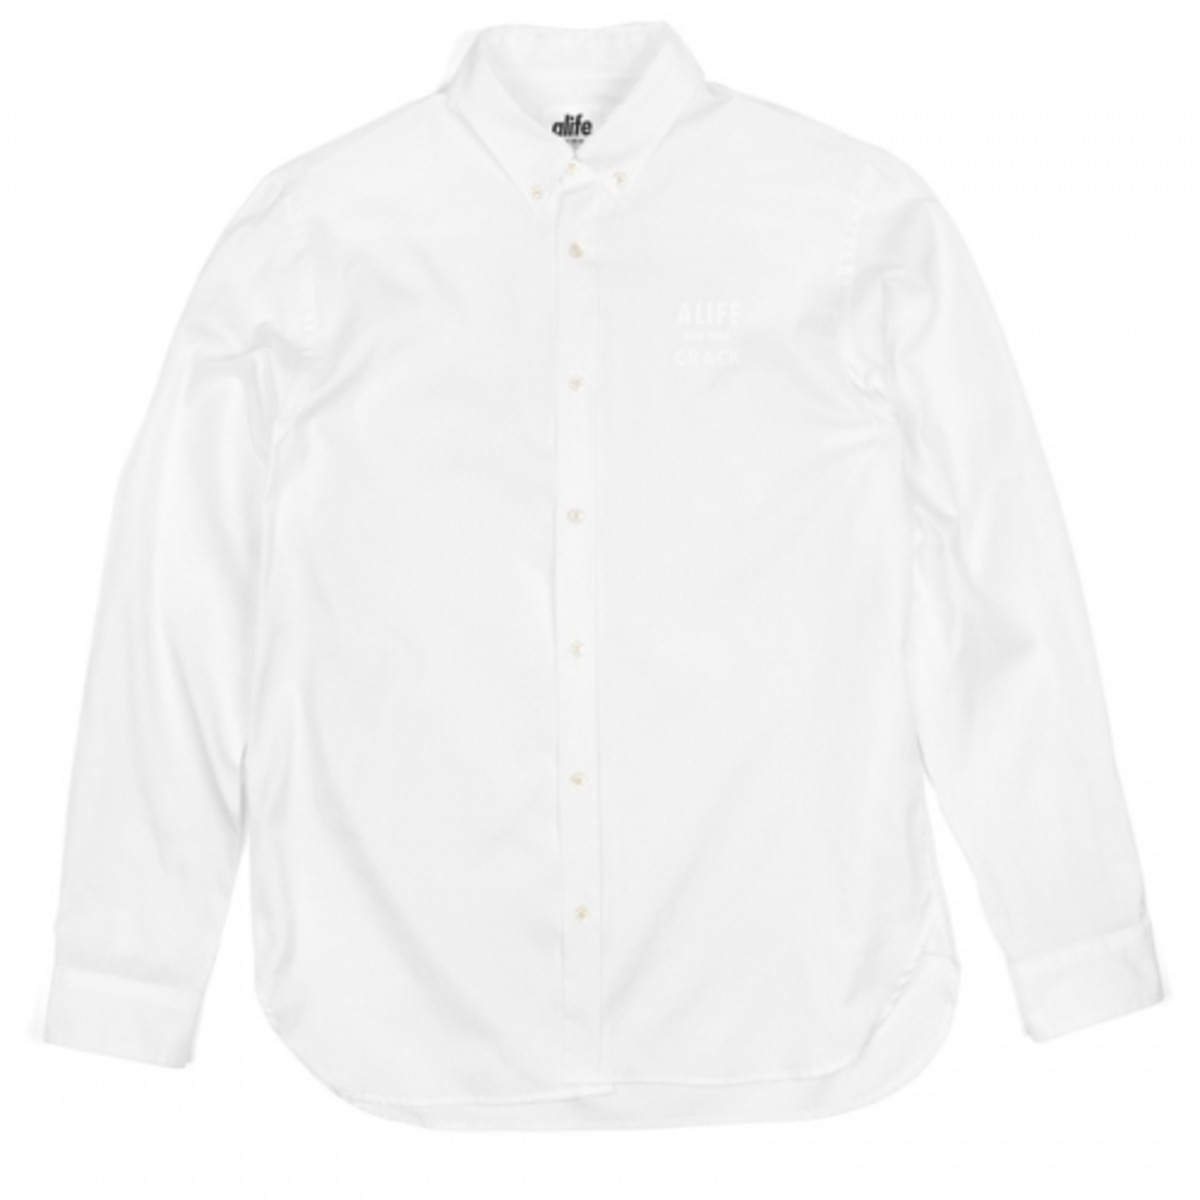 alife-spring-2010-button-down-shirt-02